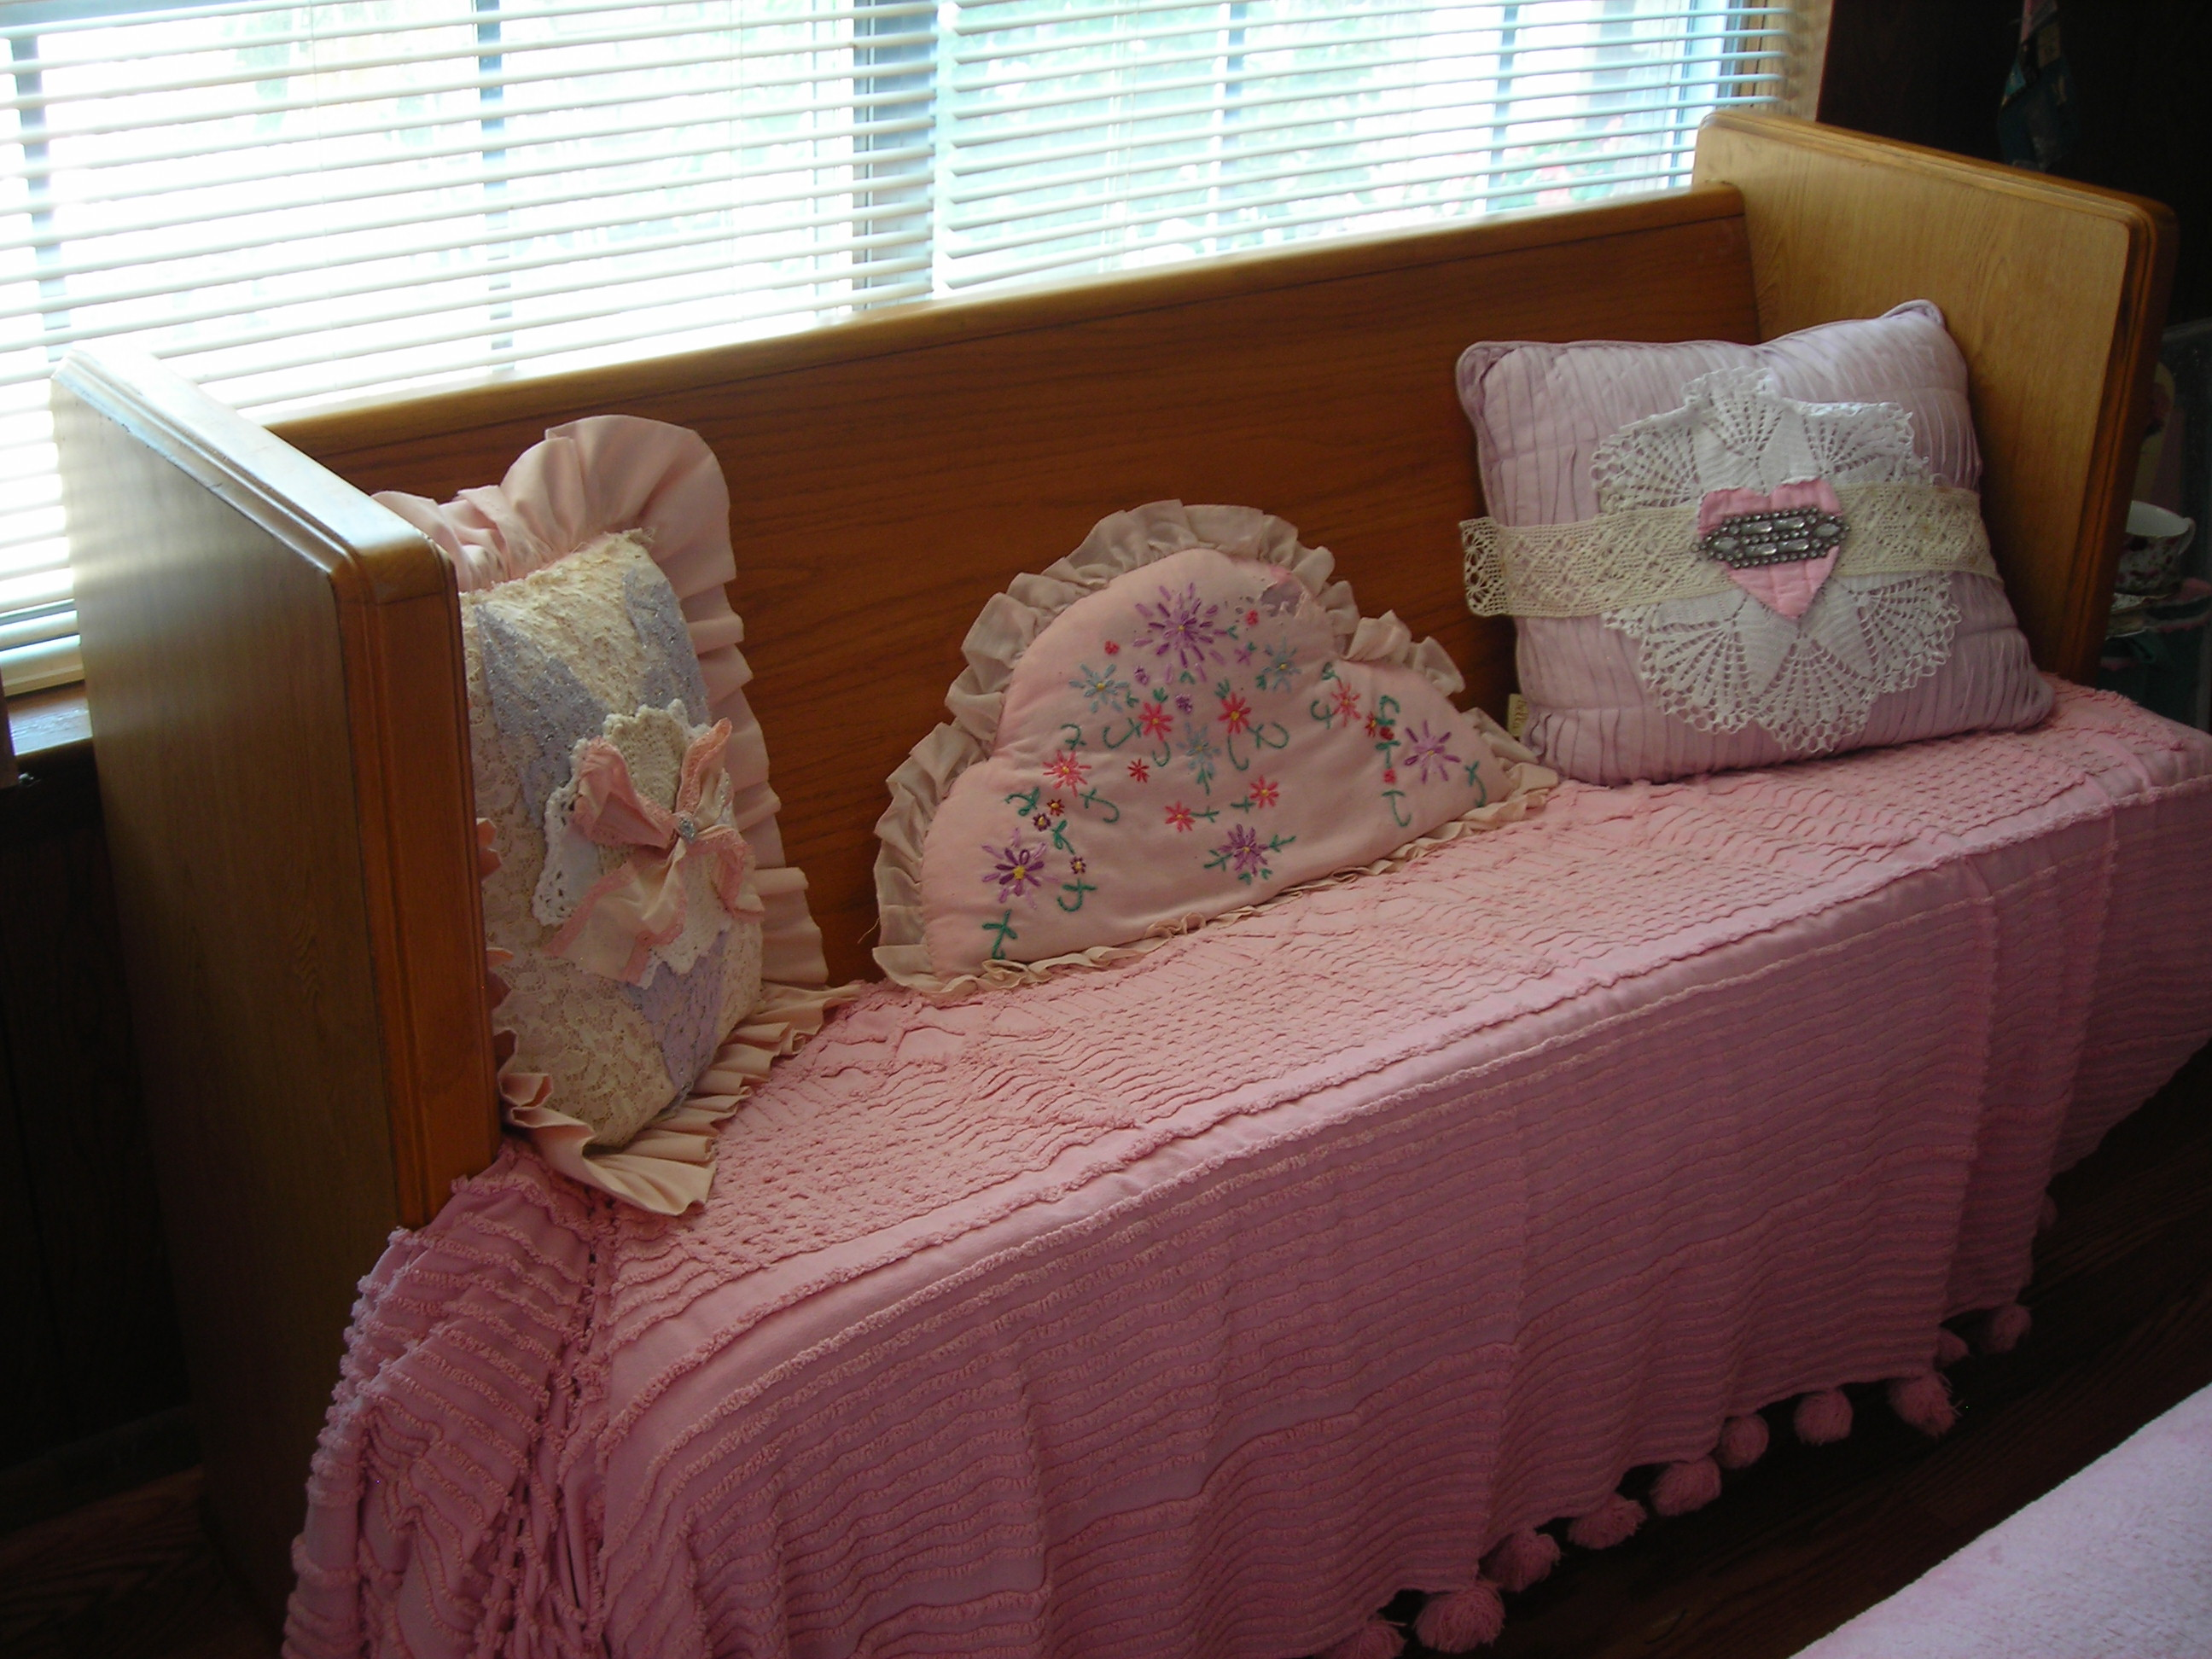 here's the church bench i mentioned in an earlier blog. found a great place for it too. in my b'fast nook! covered the cushion with an old pink chenille spread, added some sweet pillows. makes a wonderful sitting or reading area (or you may pray if you wish)